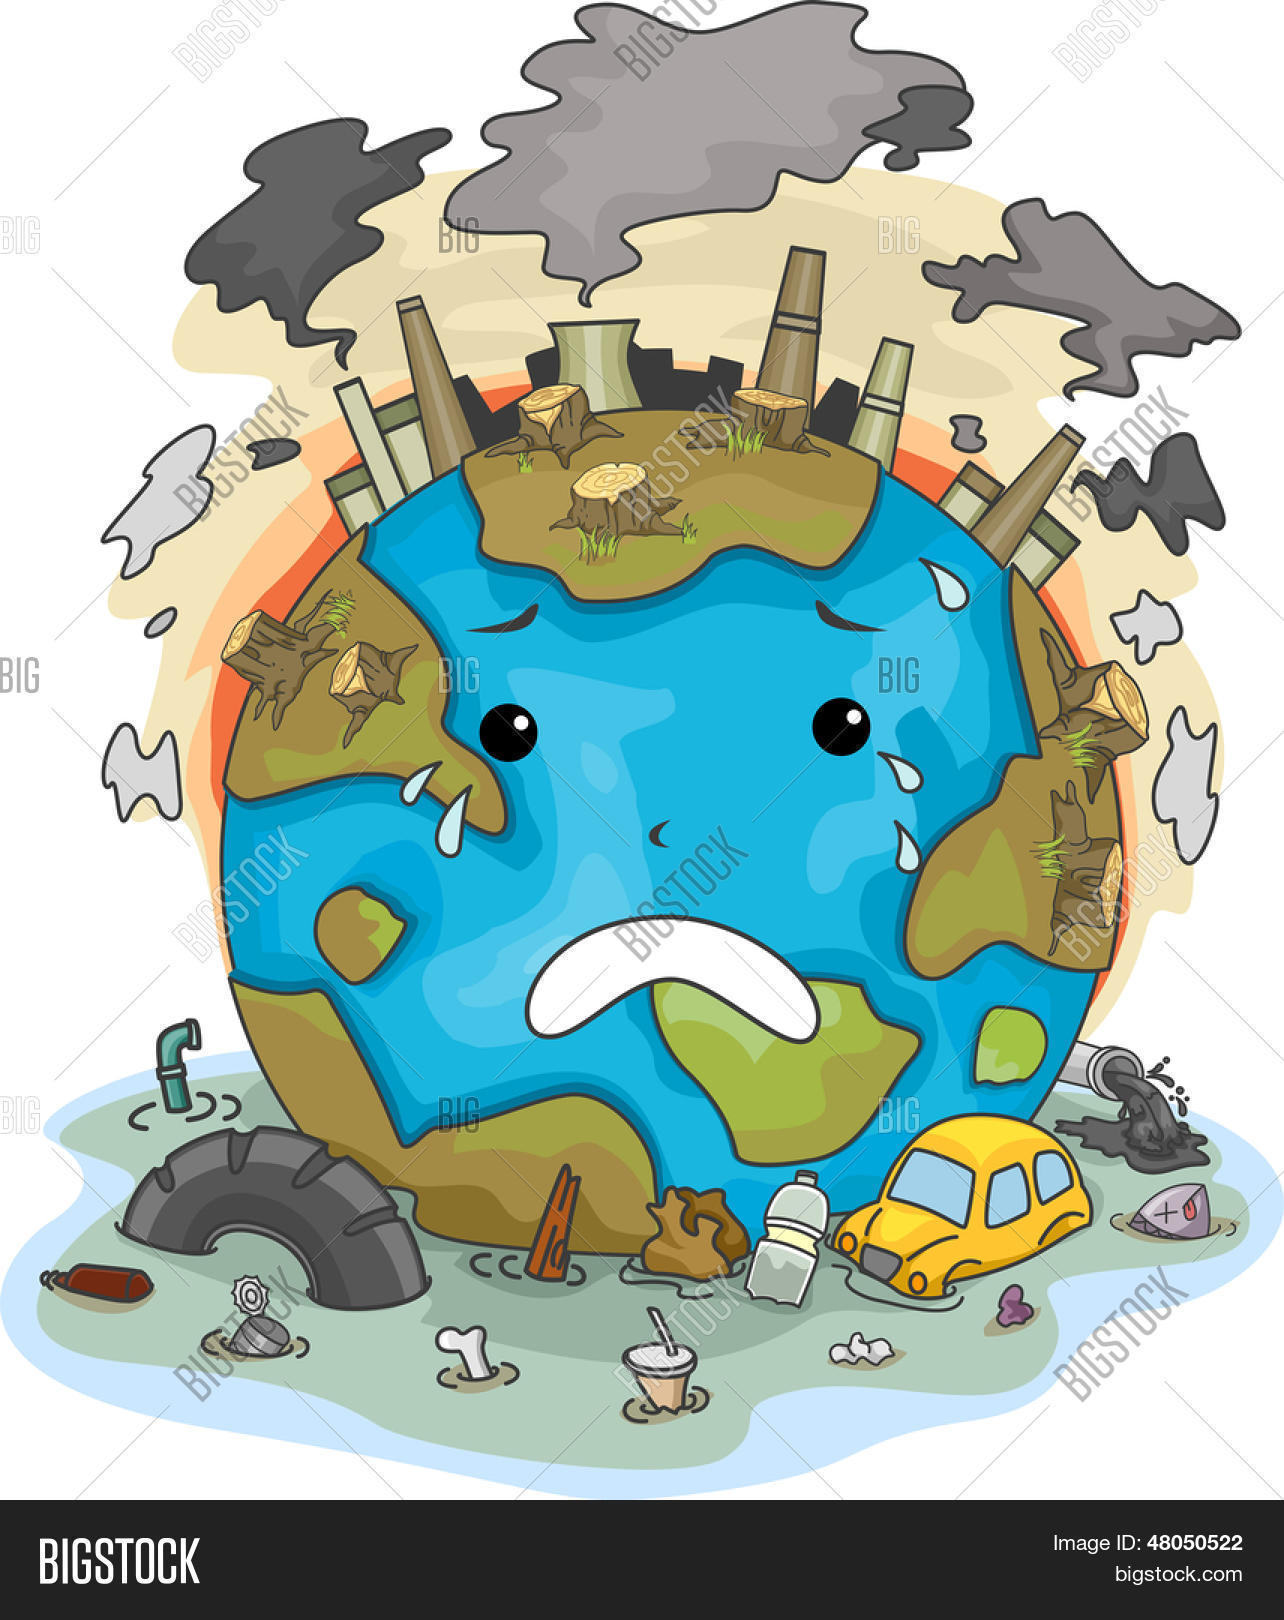 the problem of acid rain in our world Commentary and archival information about acid rain from the to a 2015 environmental problem by of the world's developing countries.